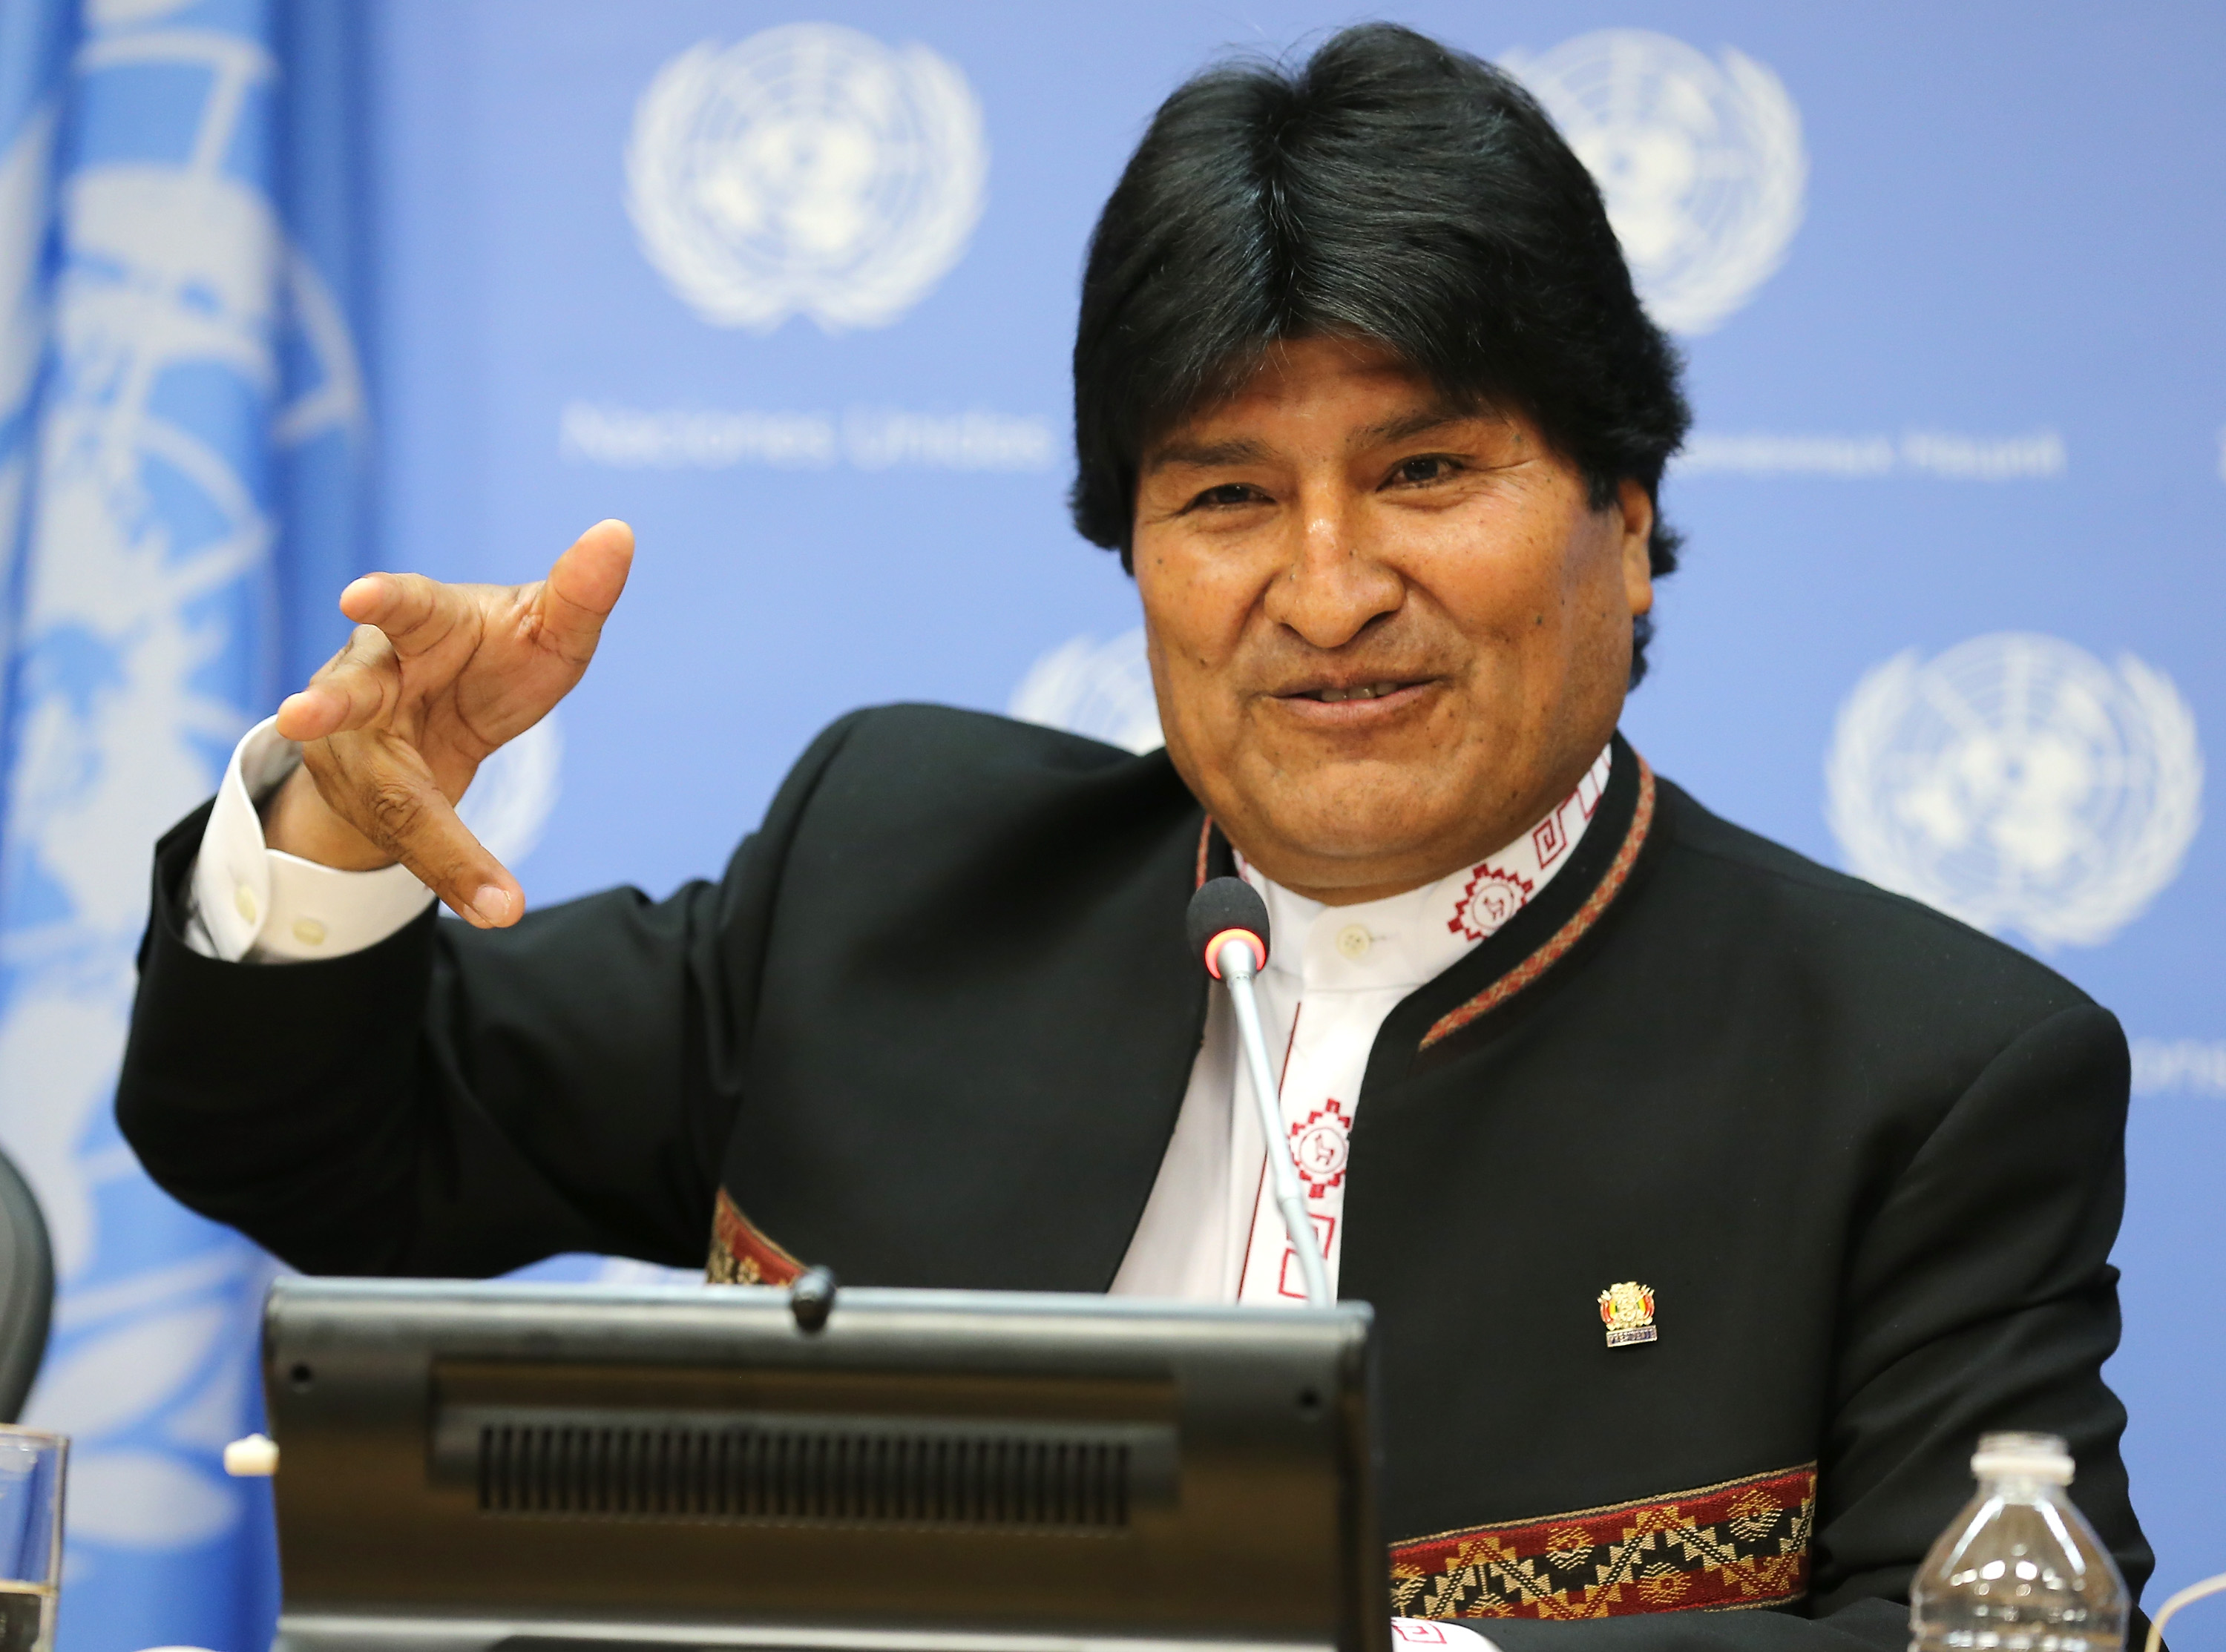 President of Bolivia Evo Morales Ayma speaks during a press conference at United Nations on April 21, 2016 in New York City.